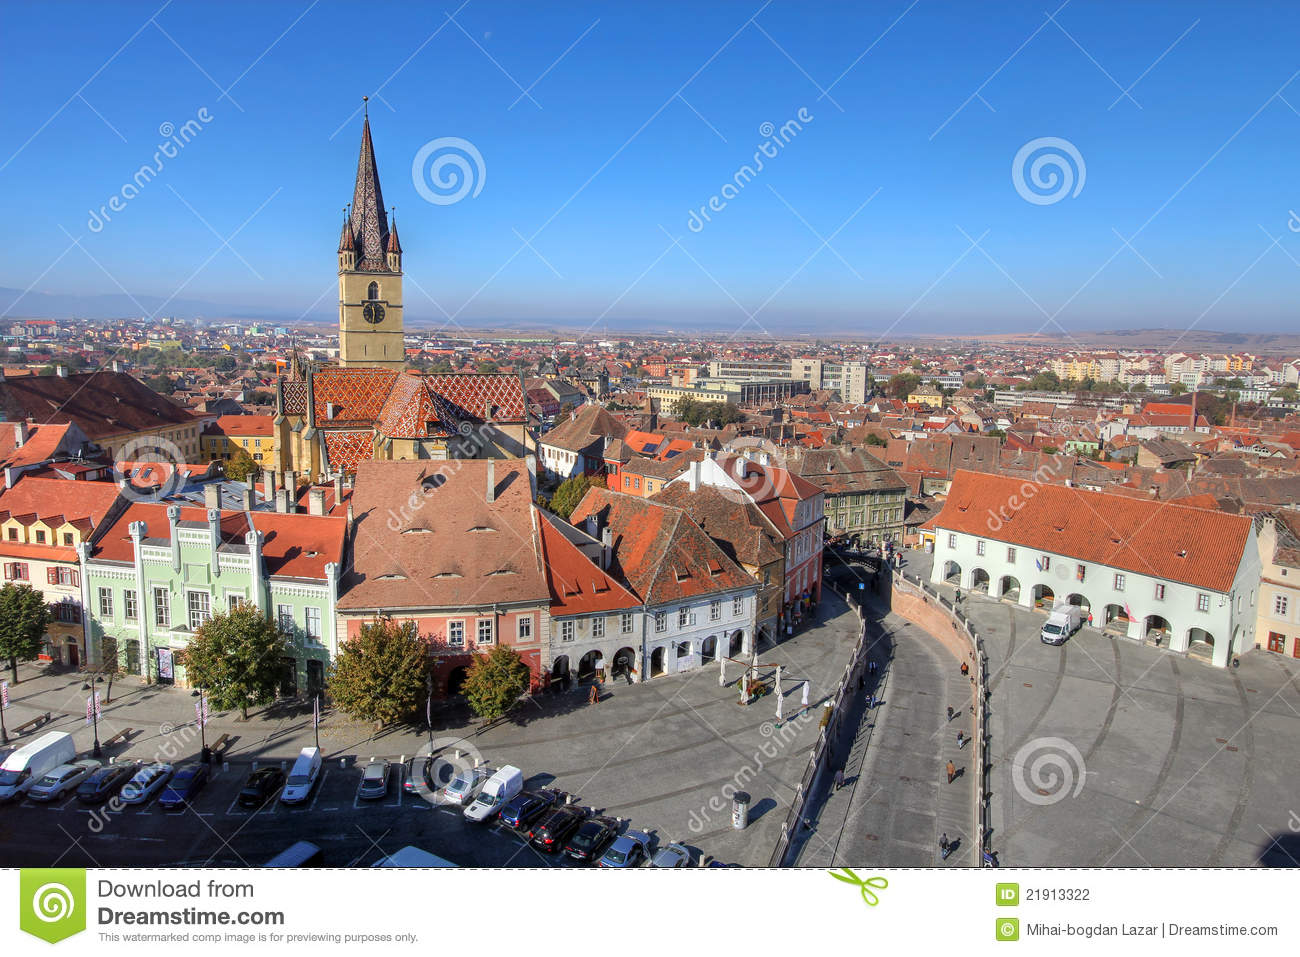 Sibiu Romania  city photos gallery : Aerial overview of Sibiu, Romania from the Council Tower. The view ...